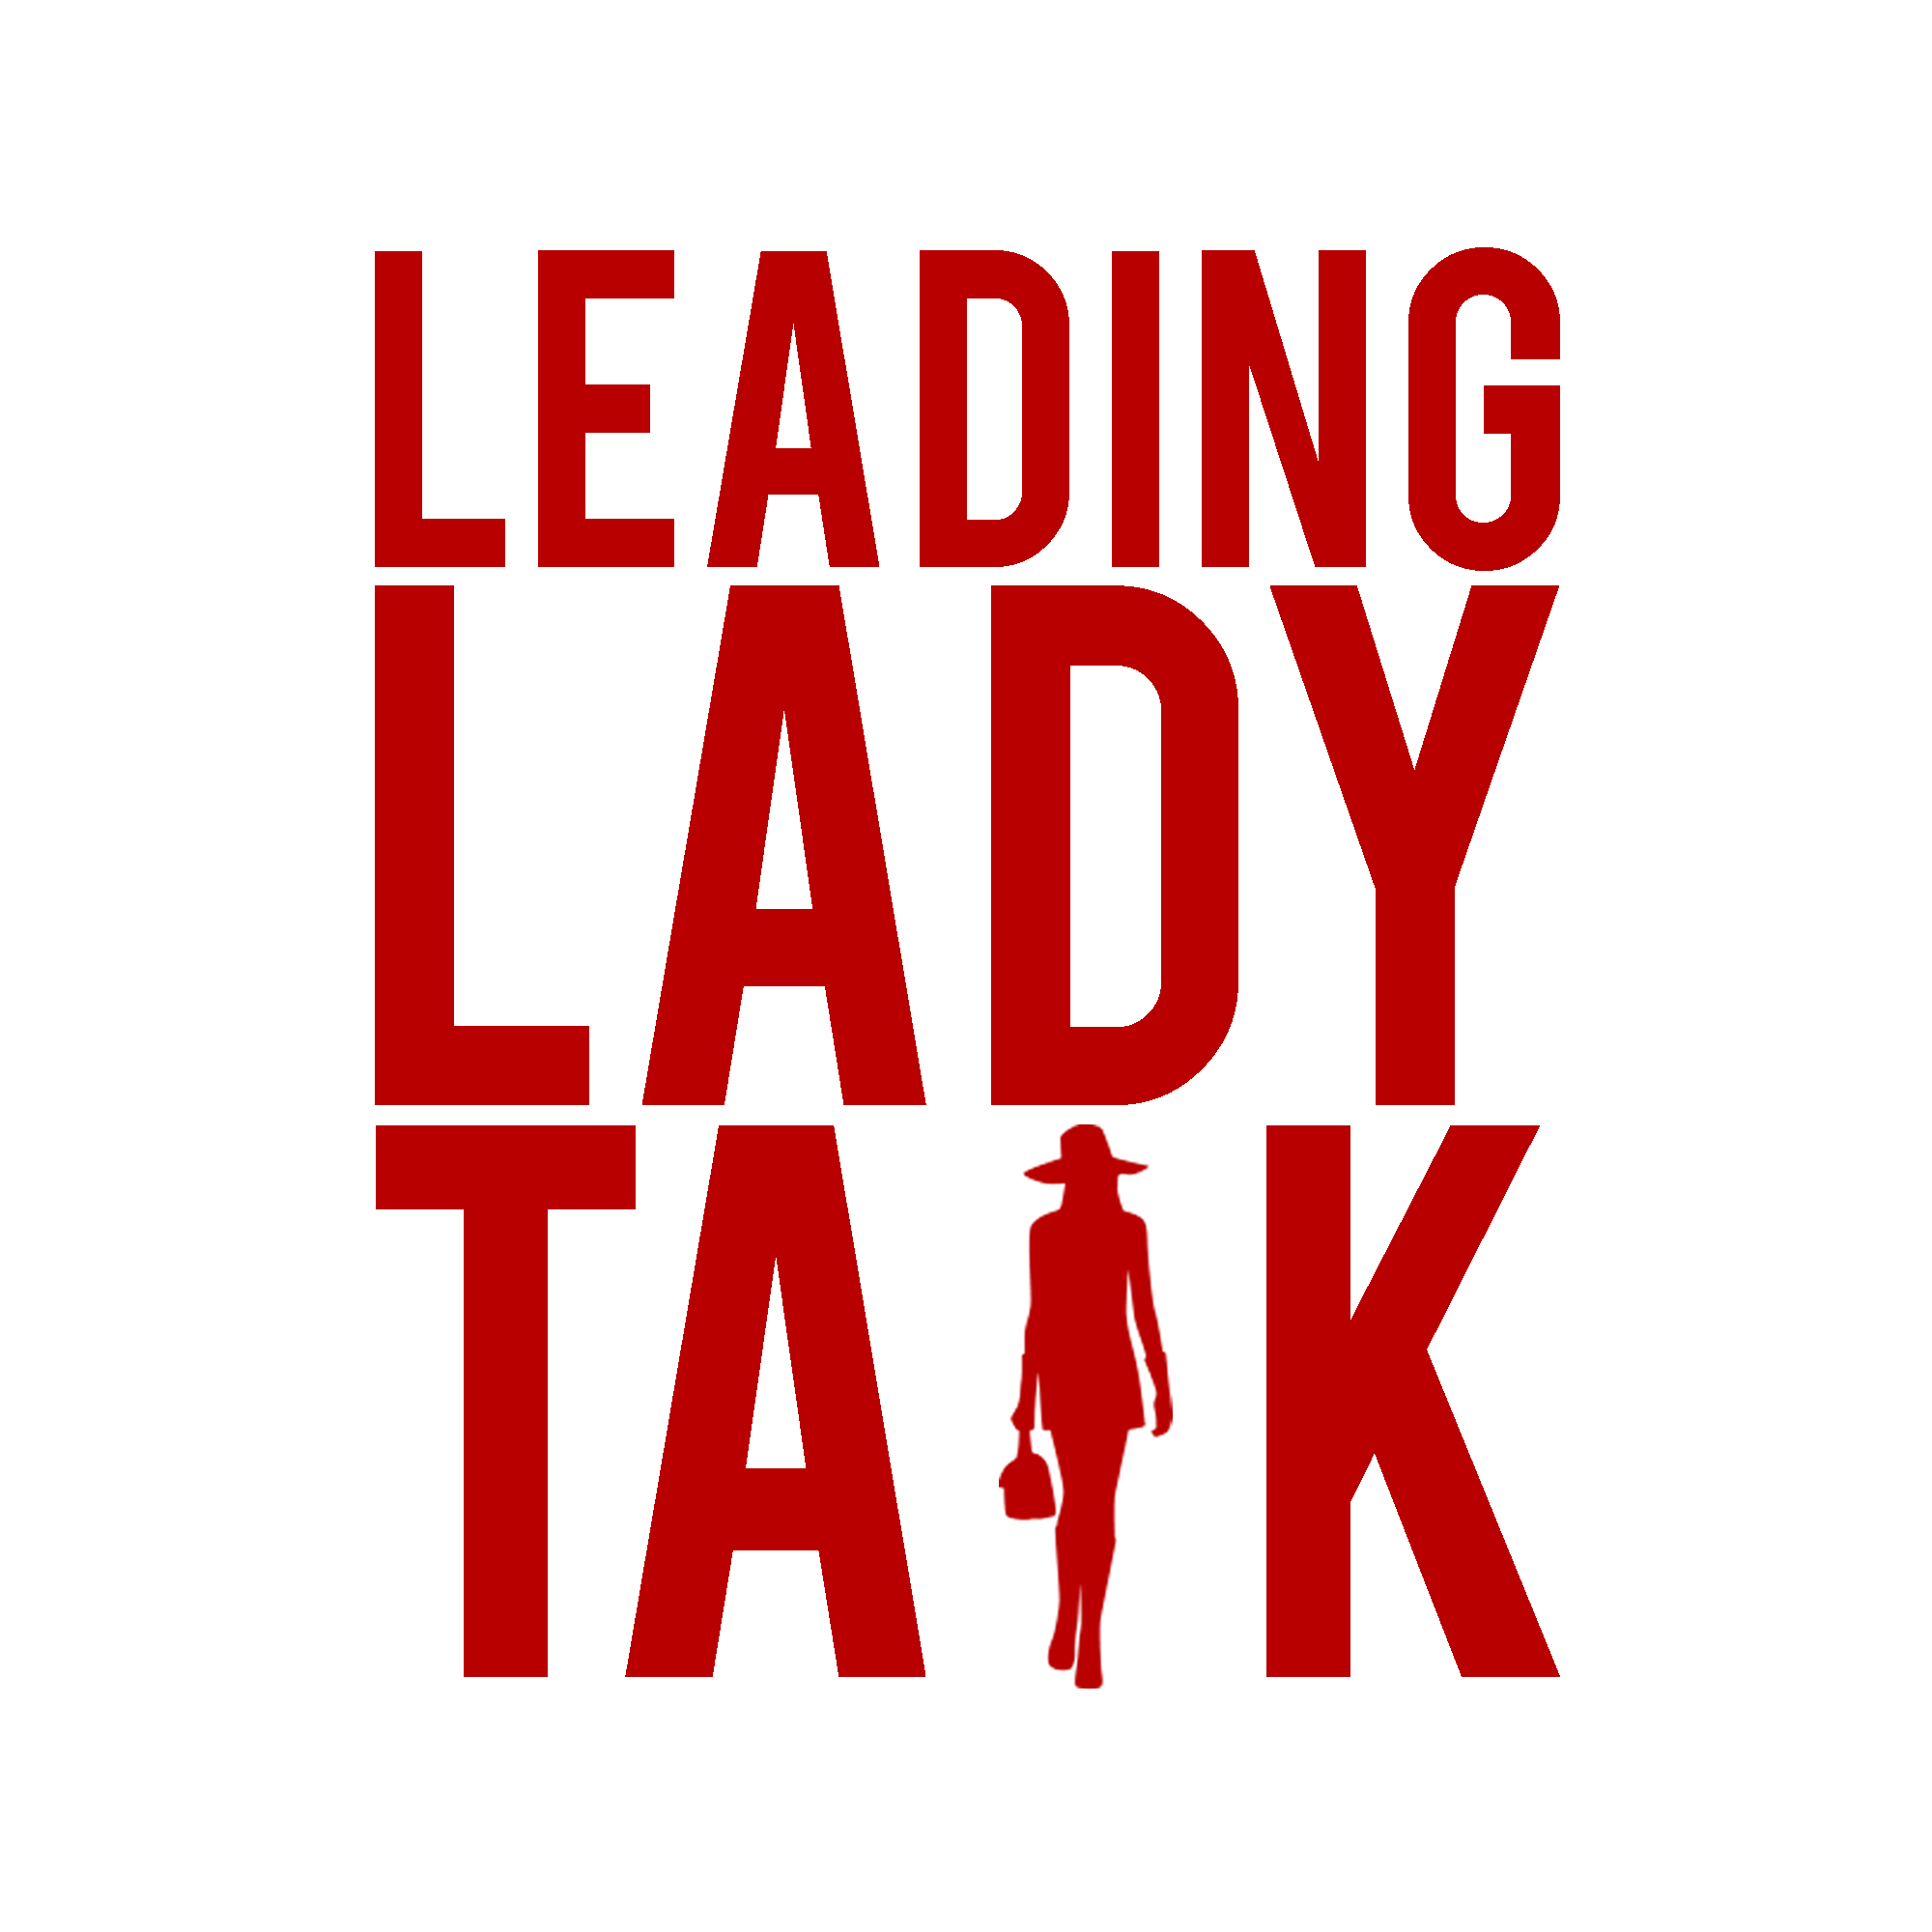 Leading Lady Talk